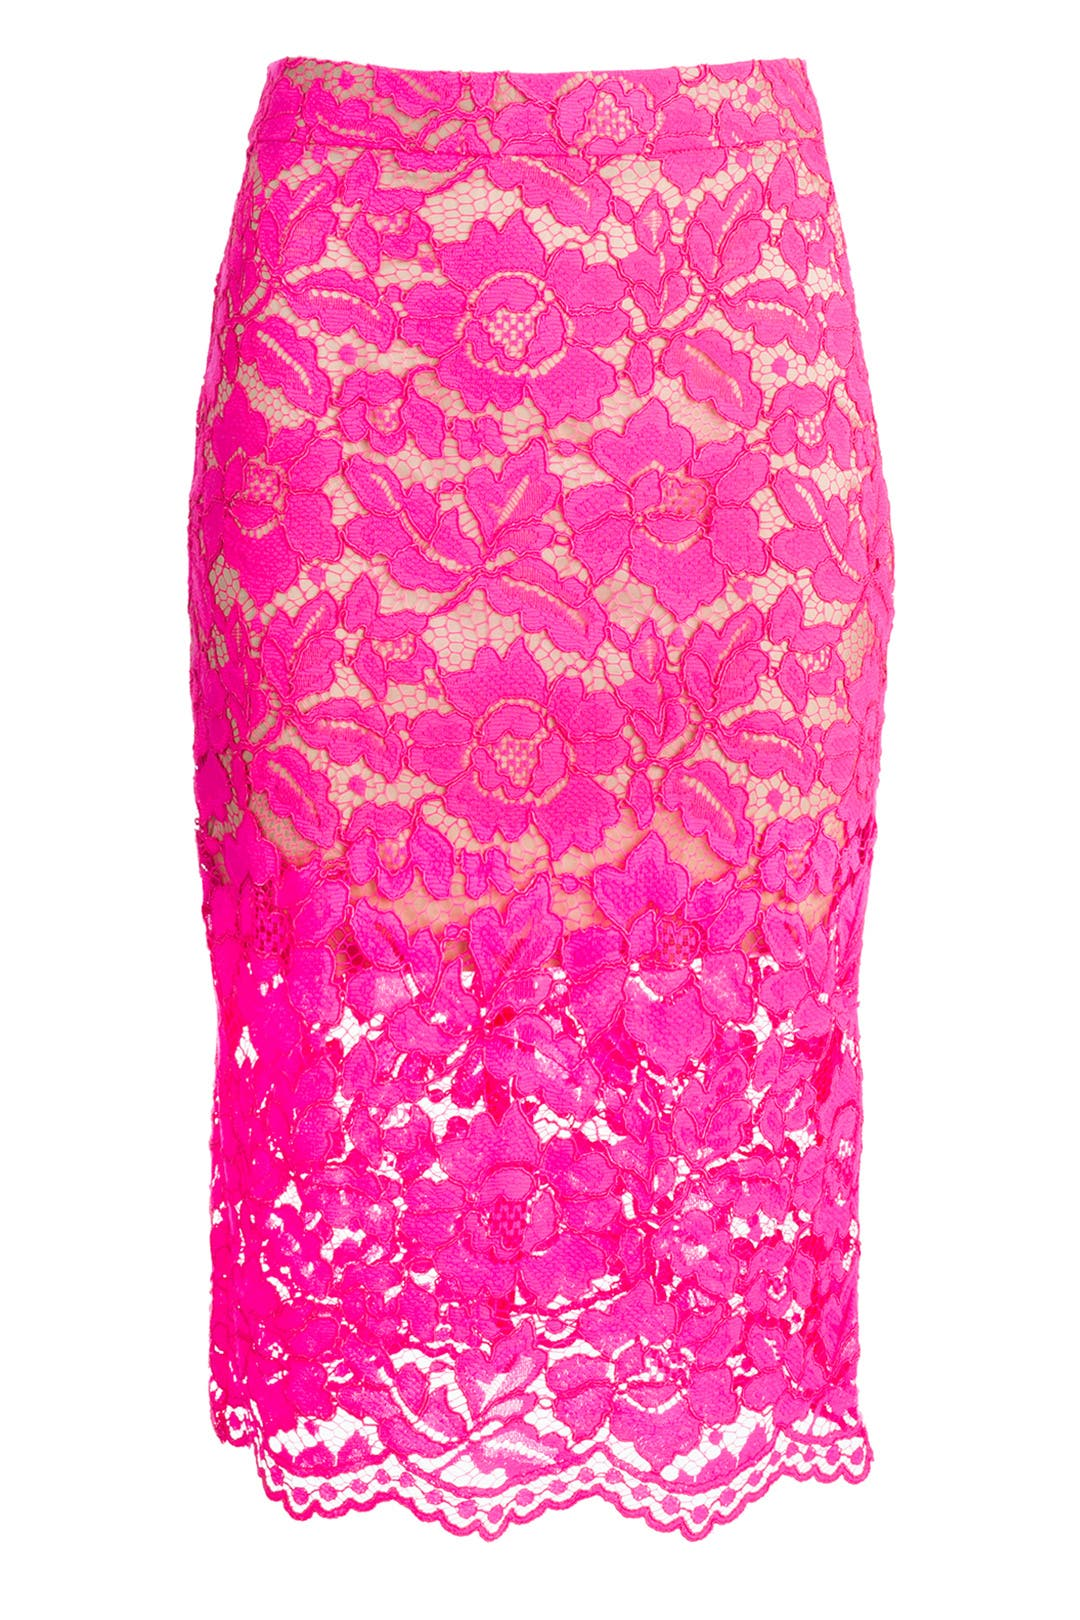 Bretta Pink Lace Skirt by Trina Turk for $122 | Rent the ...